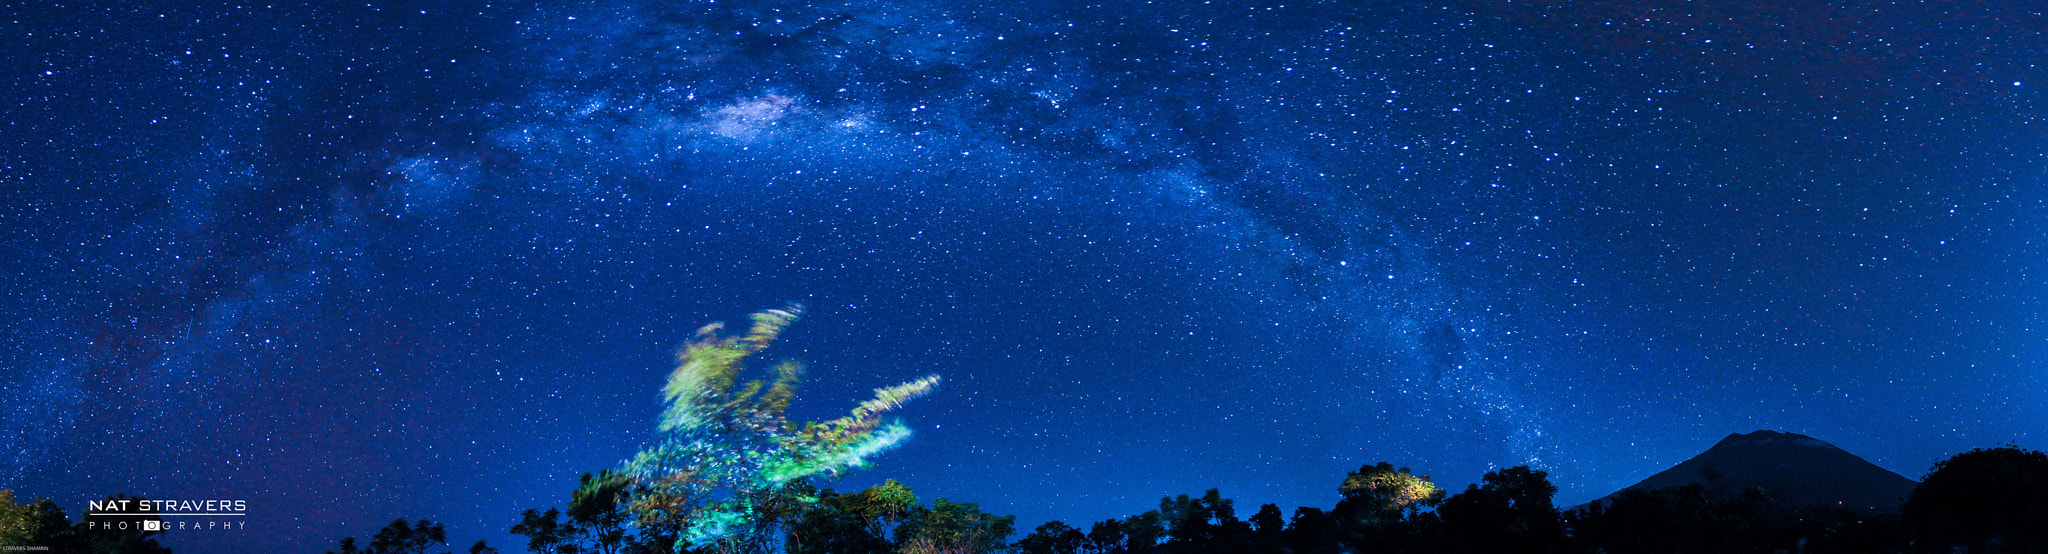 Photograph Milky Way over Agung mountain - Bali by Nathalie Stravers on 500px